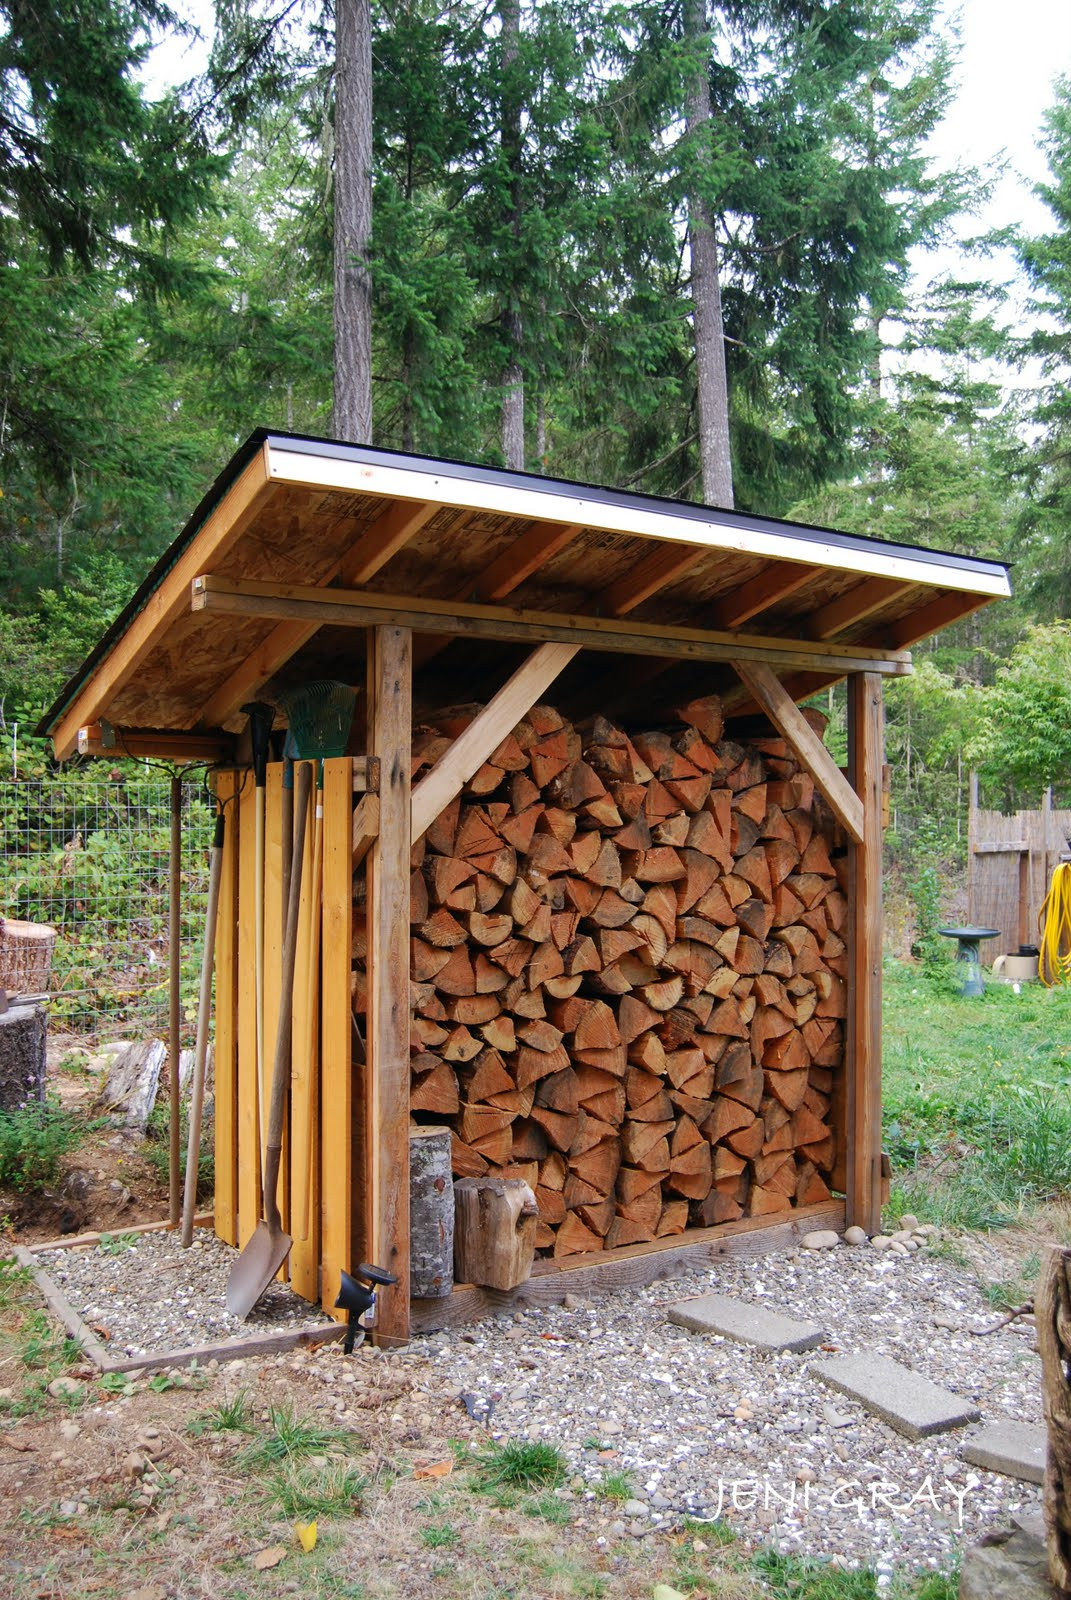 Best ideas about DIY Garden Shed Plans . Save or Pin 1000 images about Outbuildings on Pinterest Now.